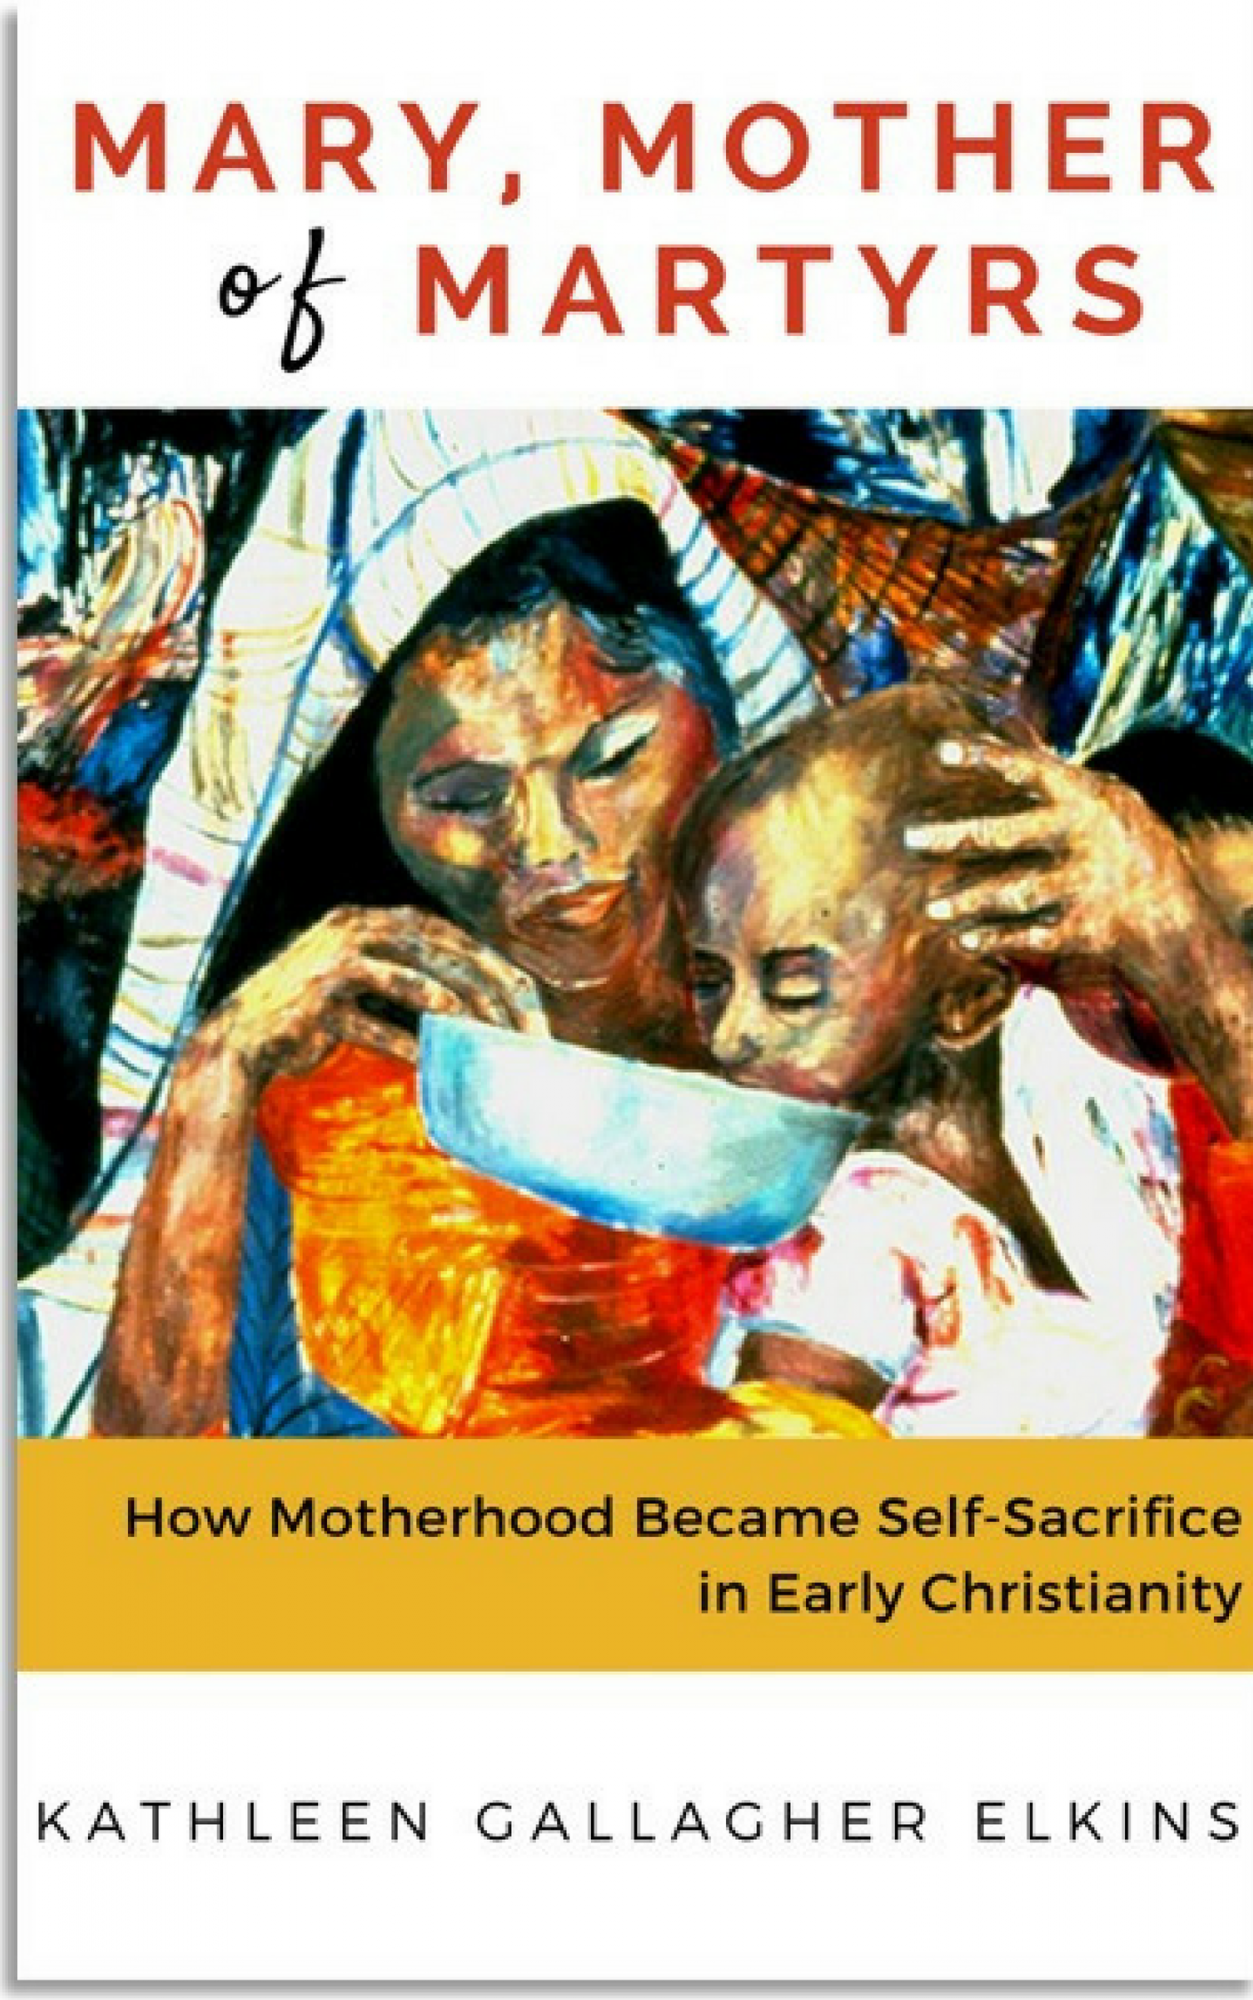 Book Cover: Mary, Mother of Martyrs: How Motherhood Became Self-Sacrifice in Early Christianity